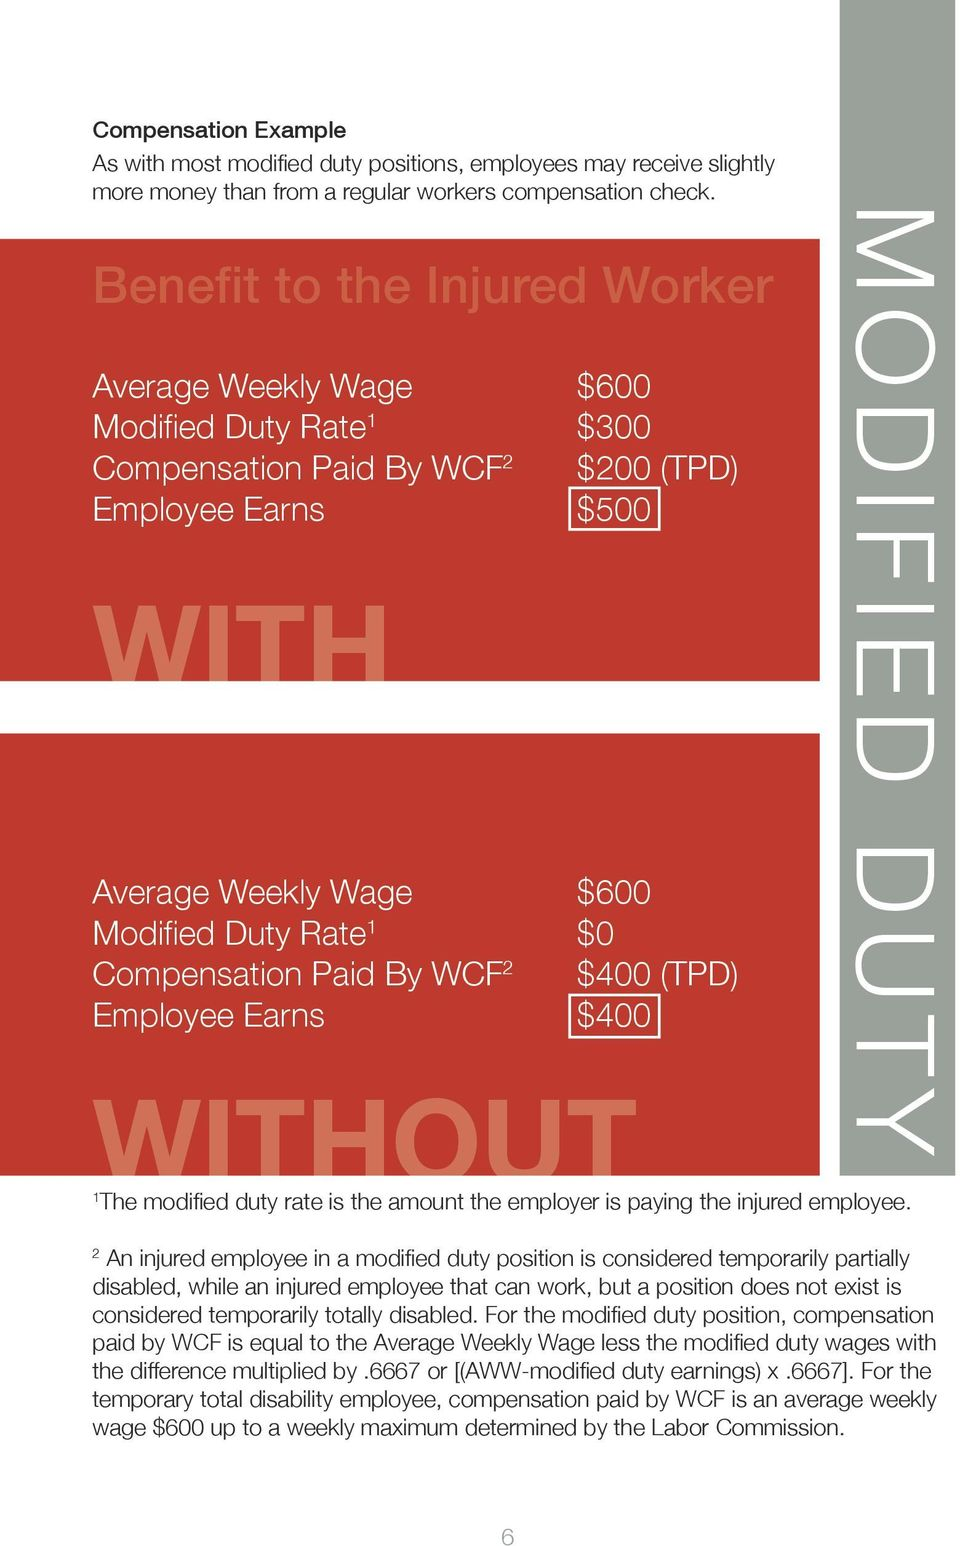 Compensation Paid By WCF 2 $400 (TPD) Employee Earns $400 MODIFIED DUTY WITHOUT 1 The modified duty rate is the amount the employer is paying the injured employee.